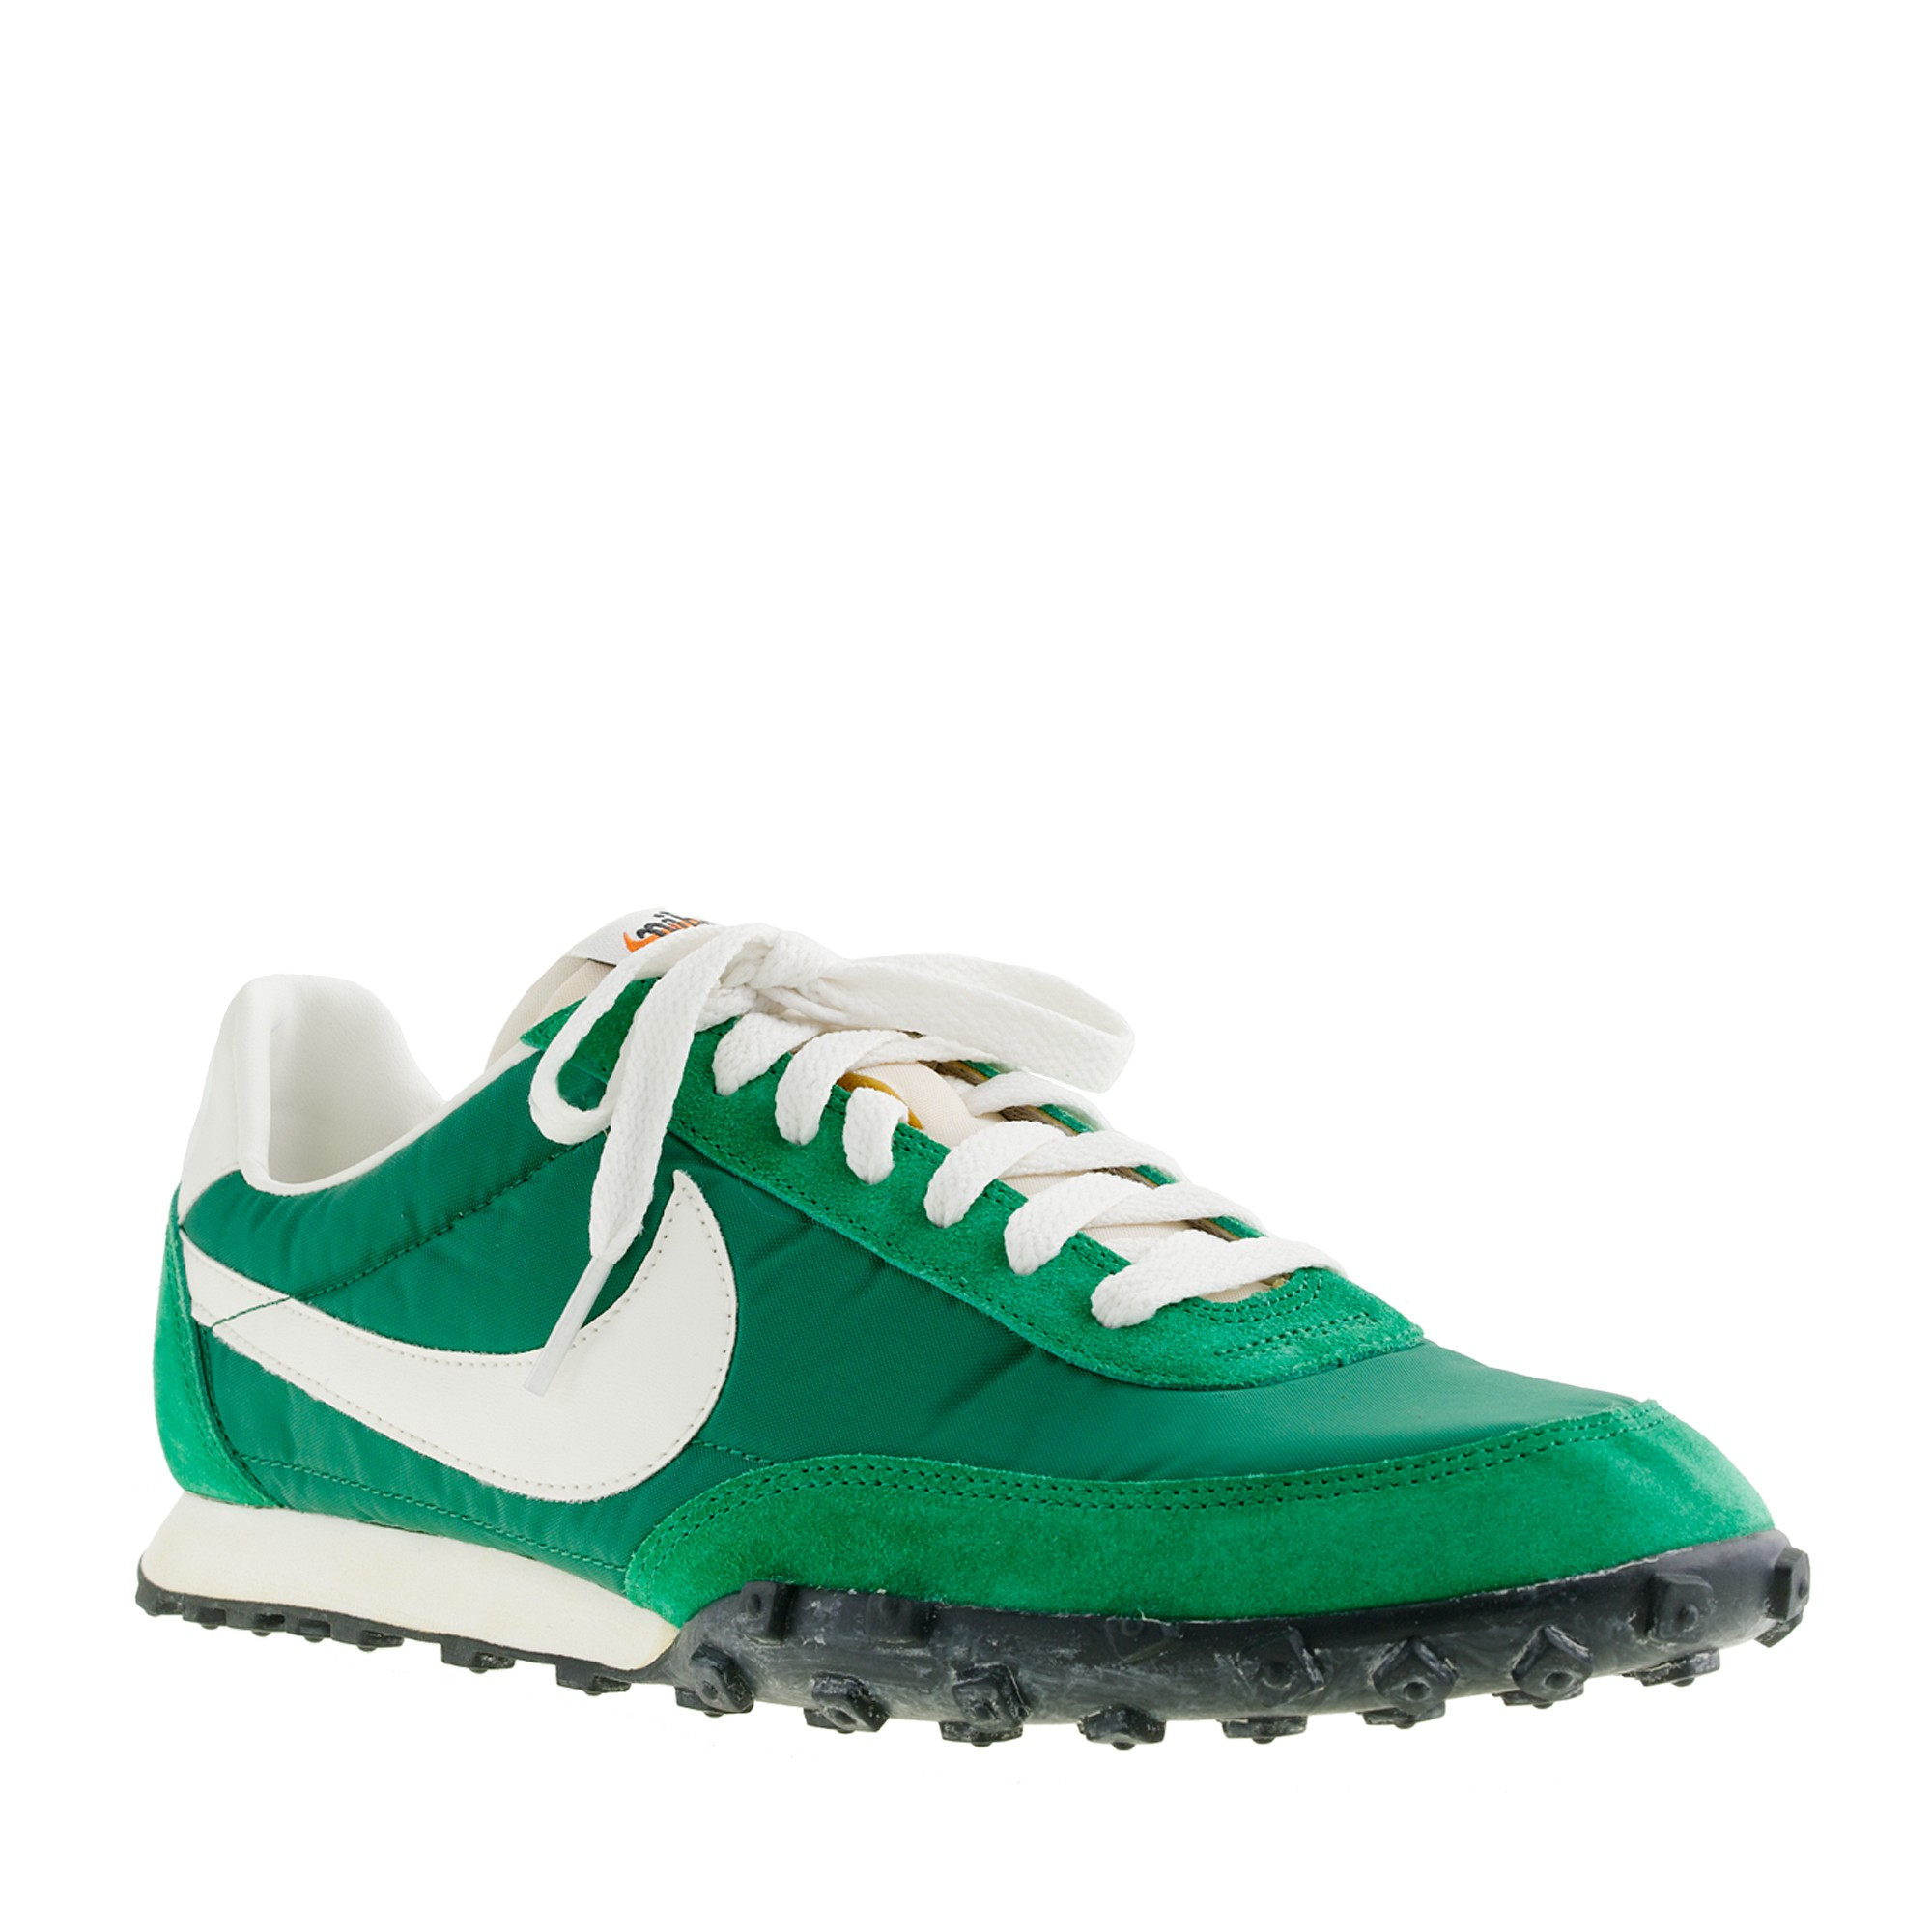 48ed31e757e9 ... get lyst j.crew nike vintage collection waffle racer sneakers in 1c407  56b57